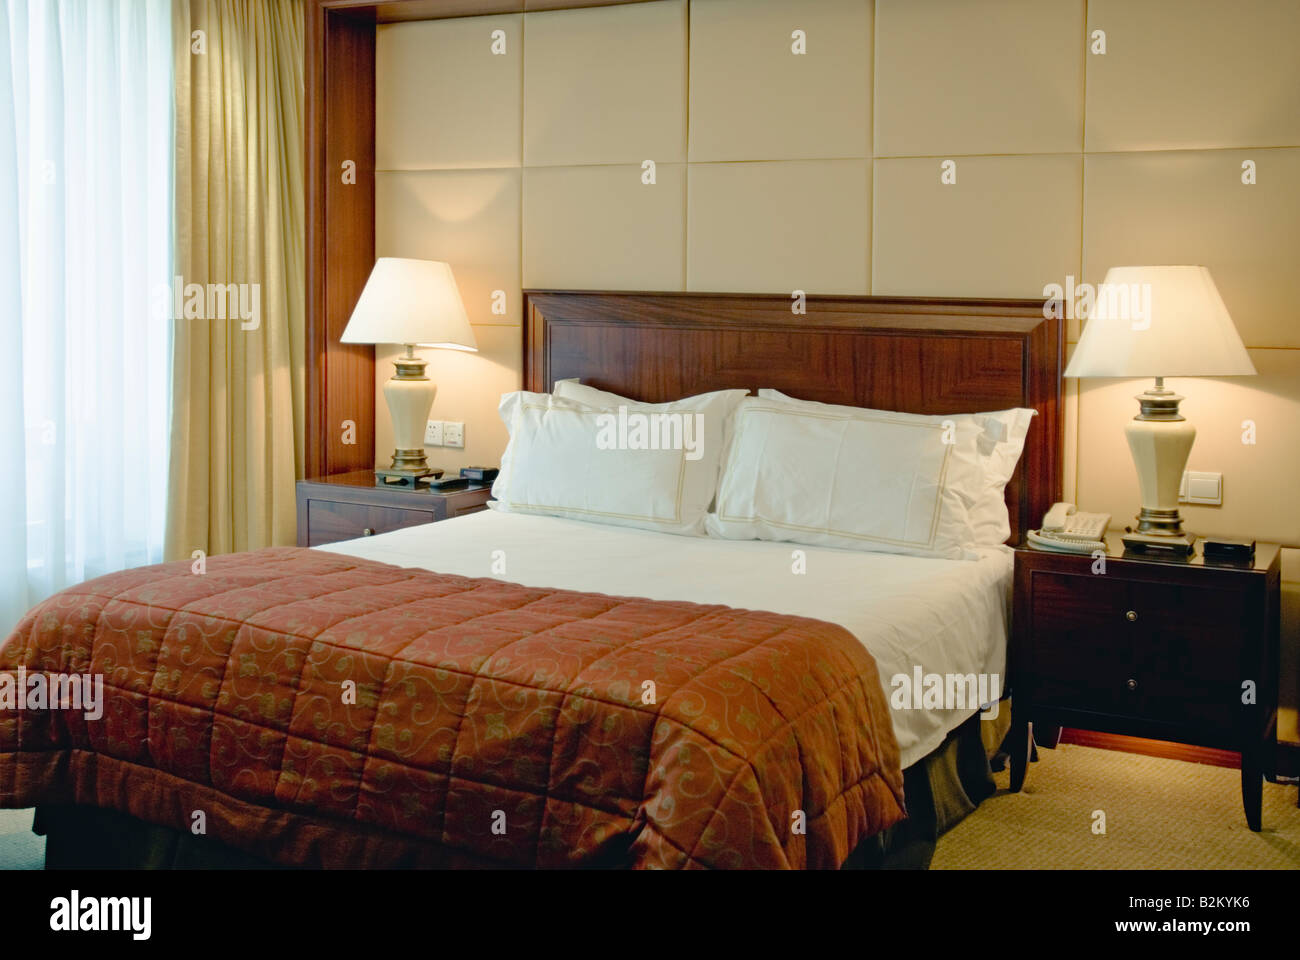 China, Nanjing, Lakeview Xuanwu Hotel room interior - Stock Image